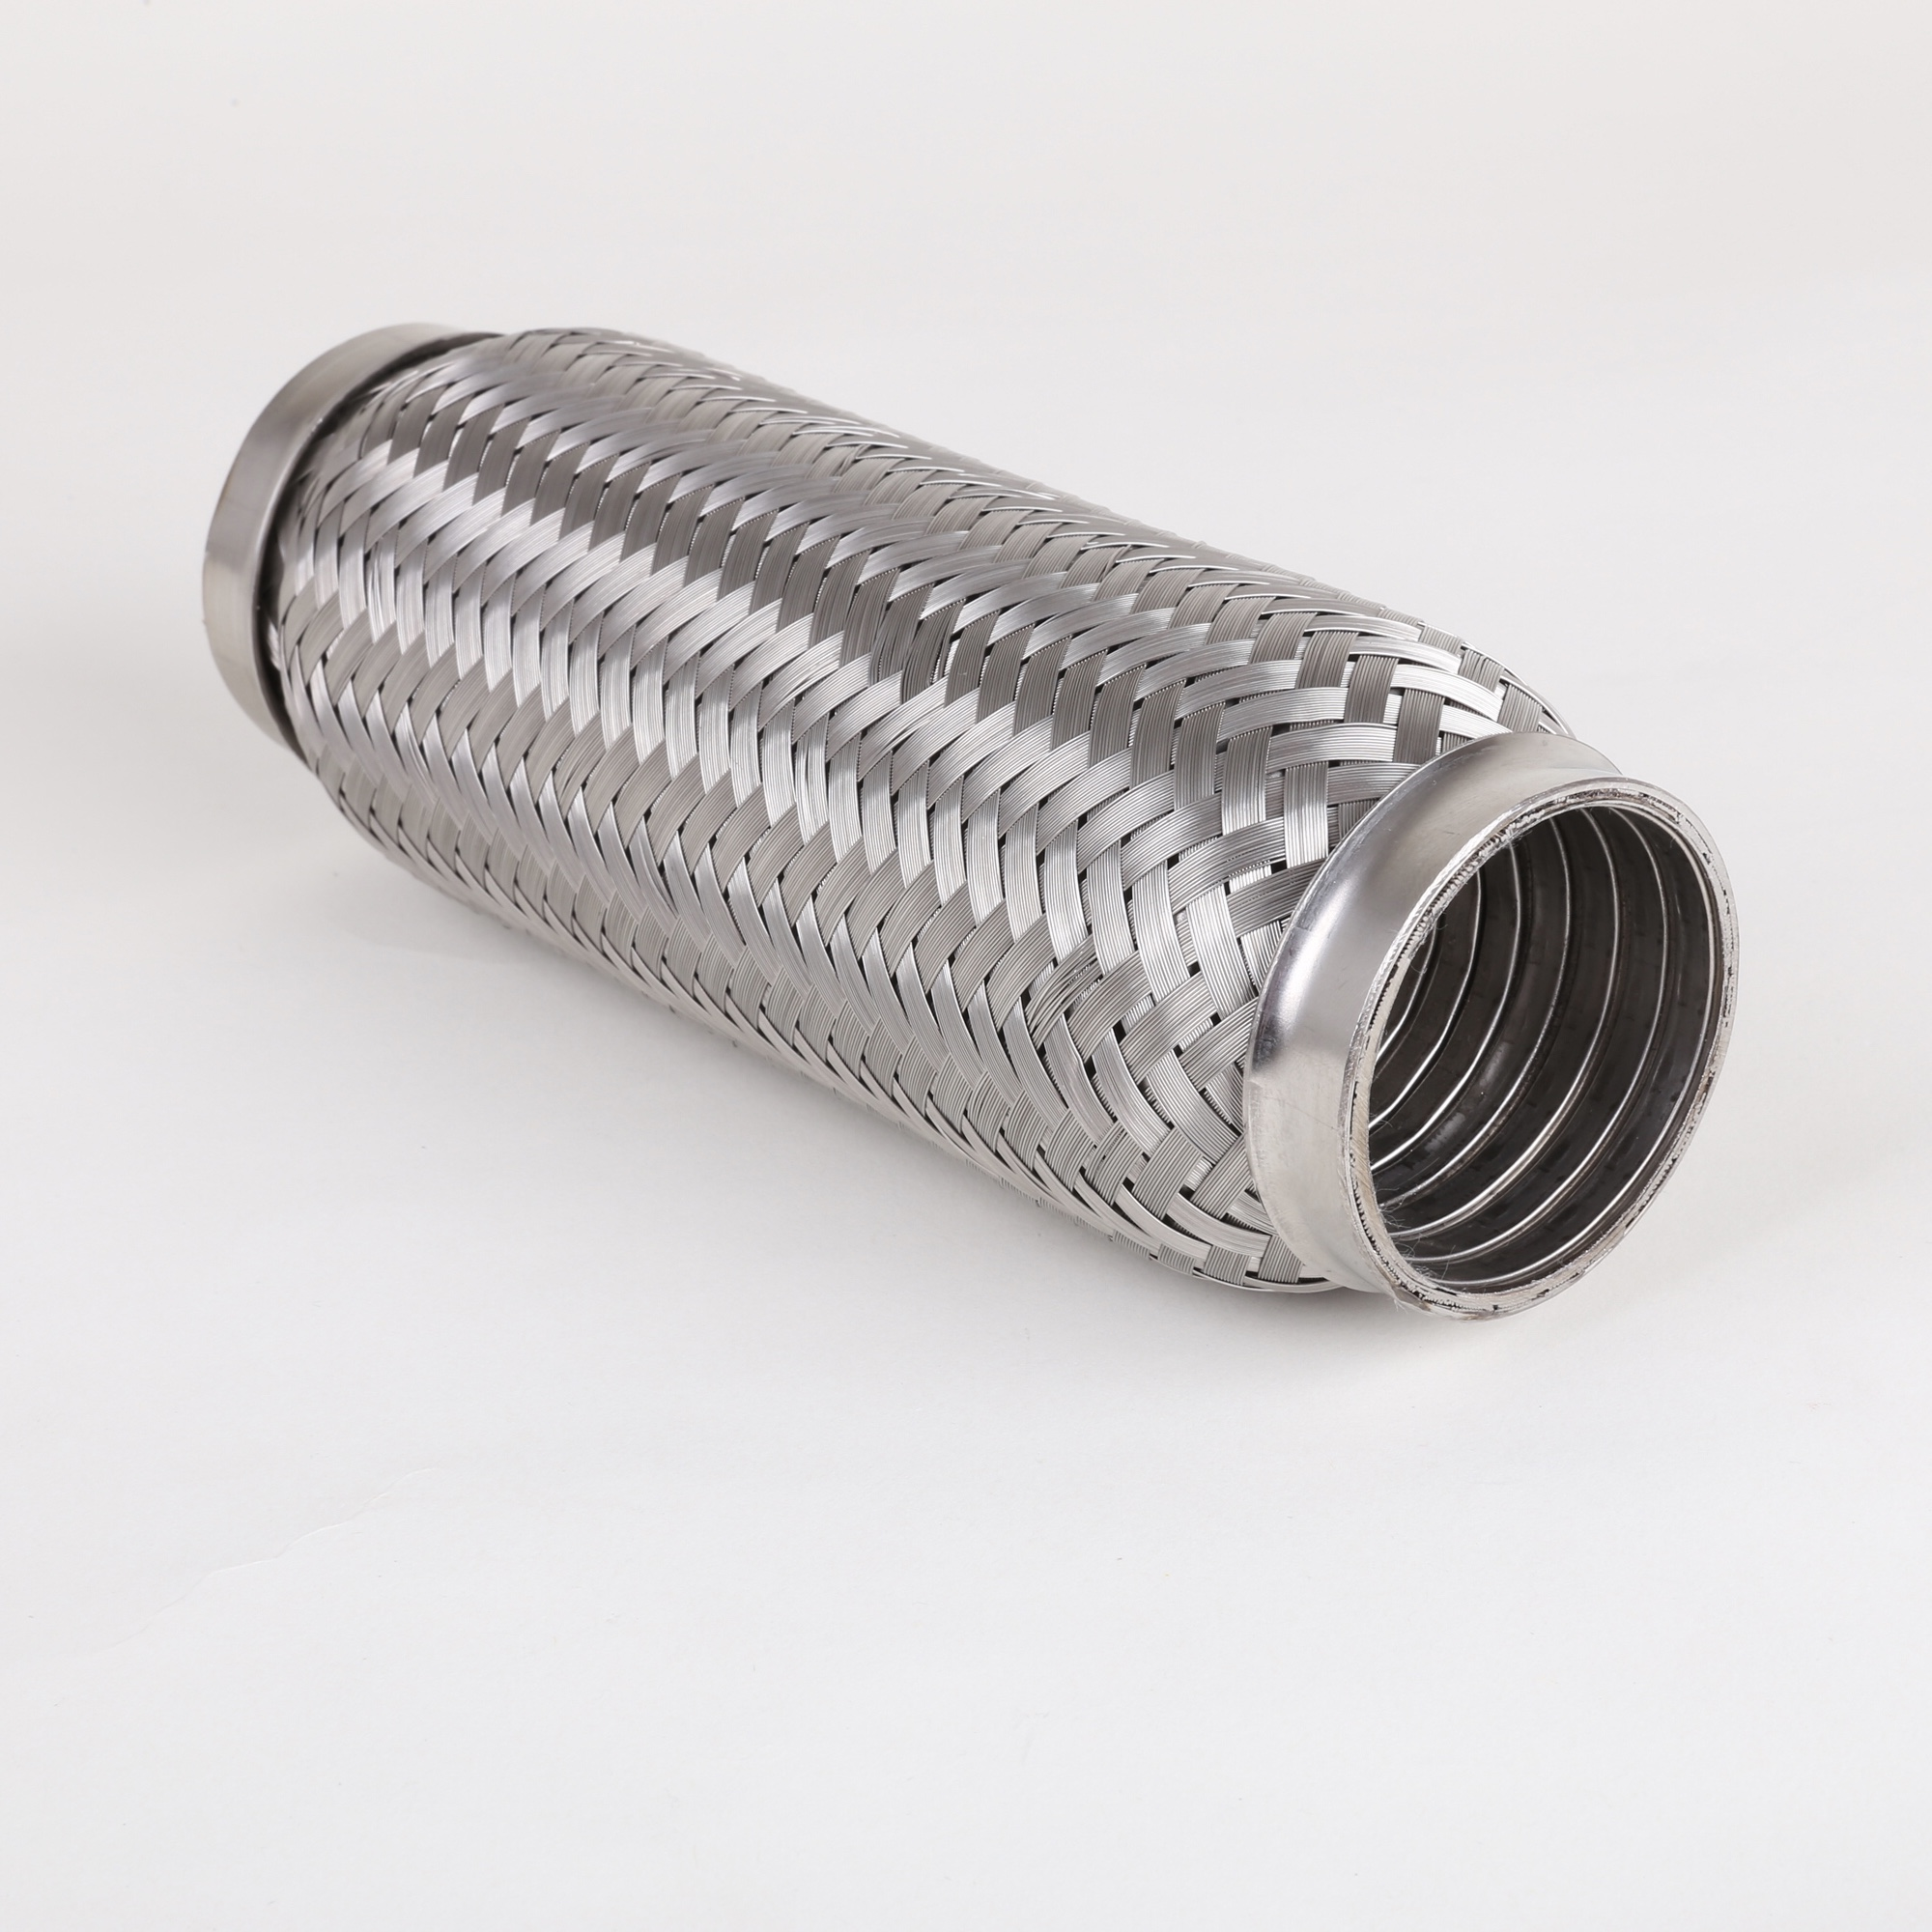 Stainless Steel Flexible Corrugated Pipe Assembly for Automobile Engine